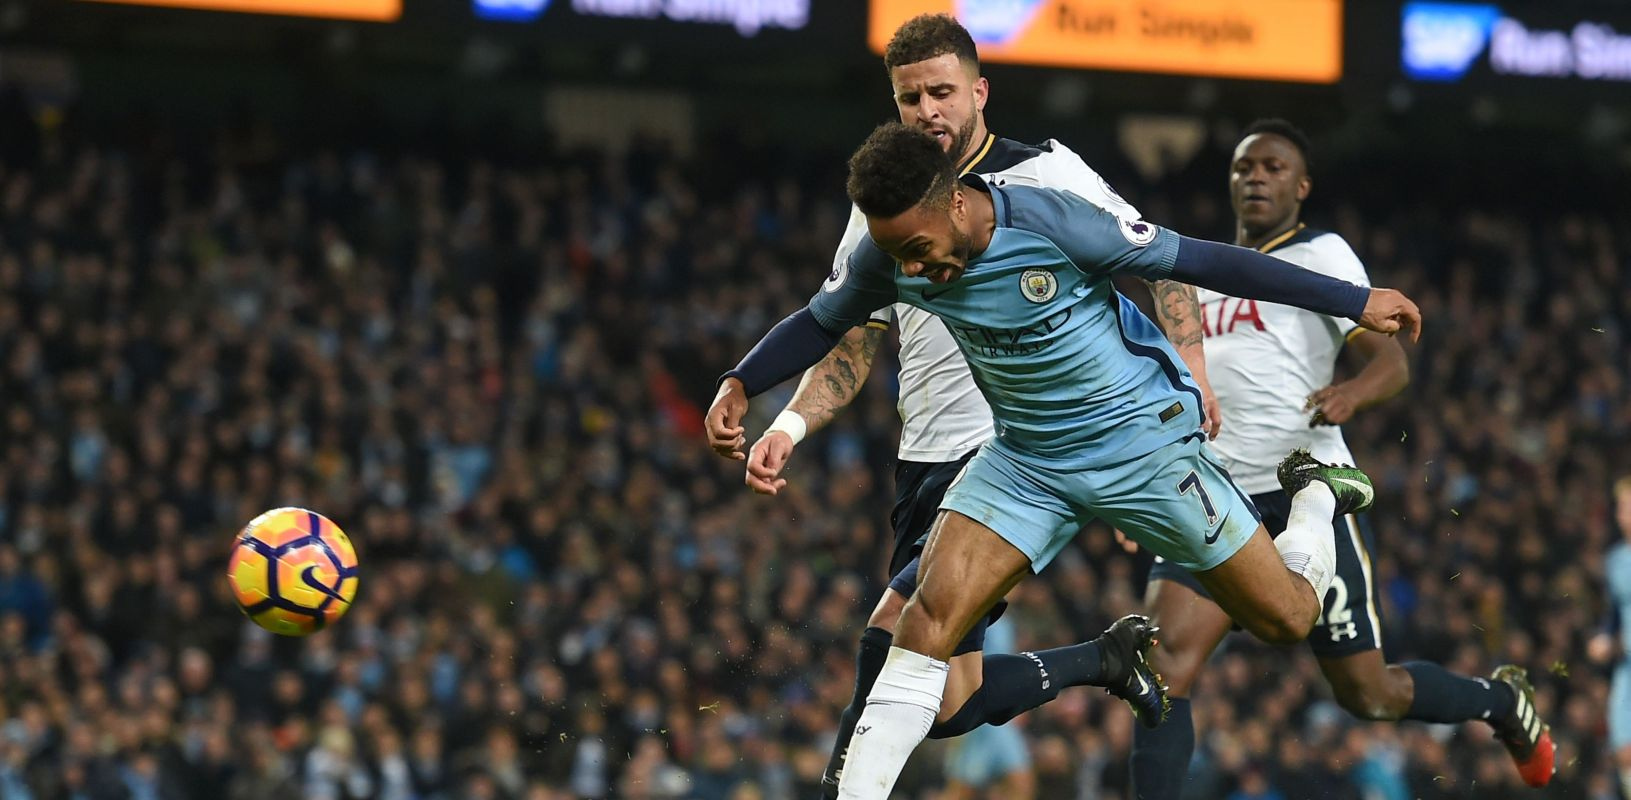 Stonewall Sterling penalty - Raheem is denied a nailed on penalty appeal after being fouled by Spurs' Kyle Walker.